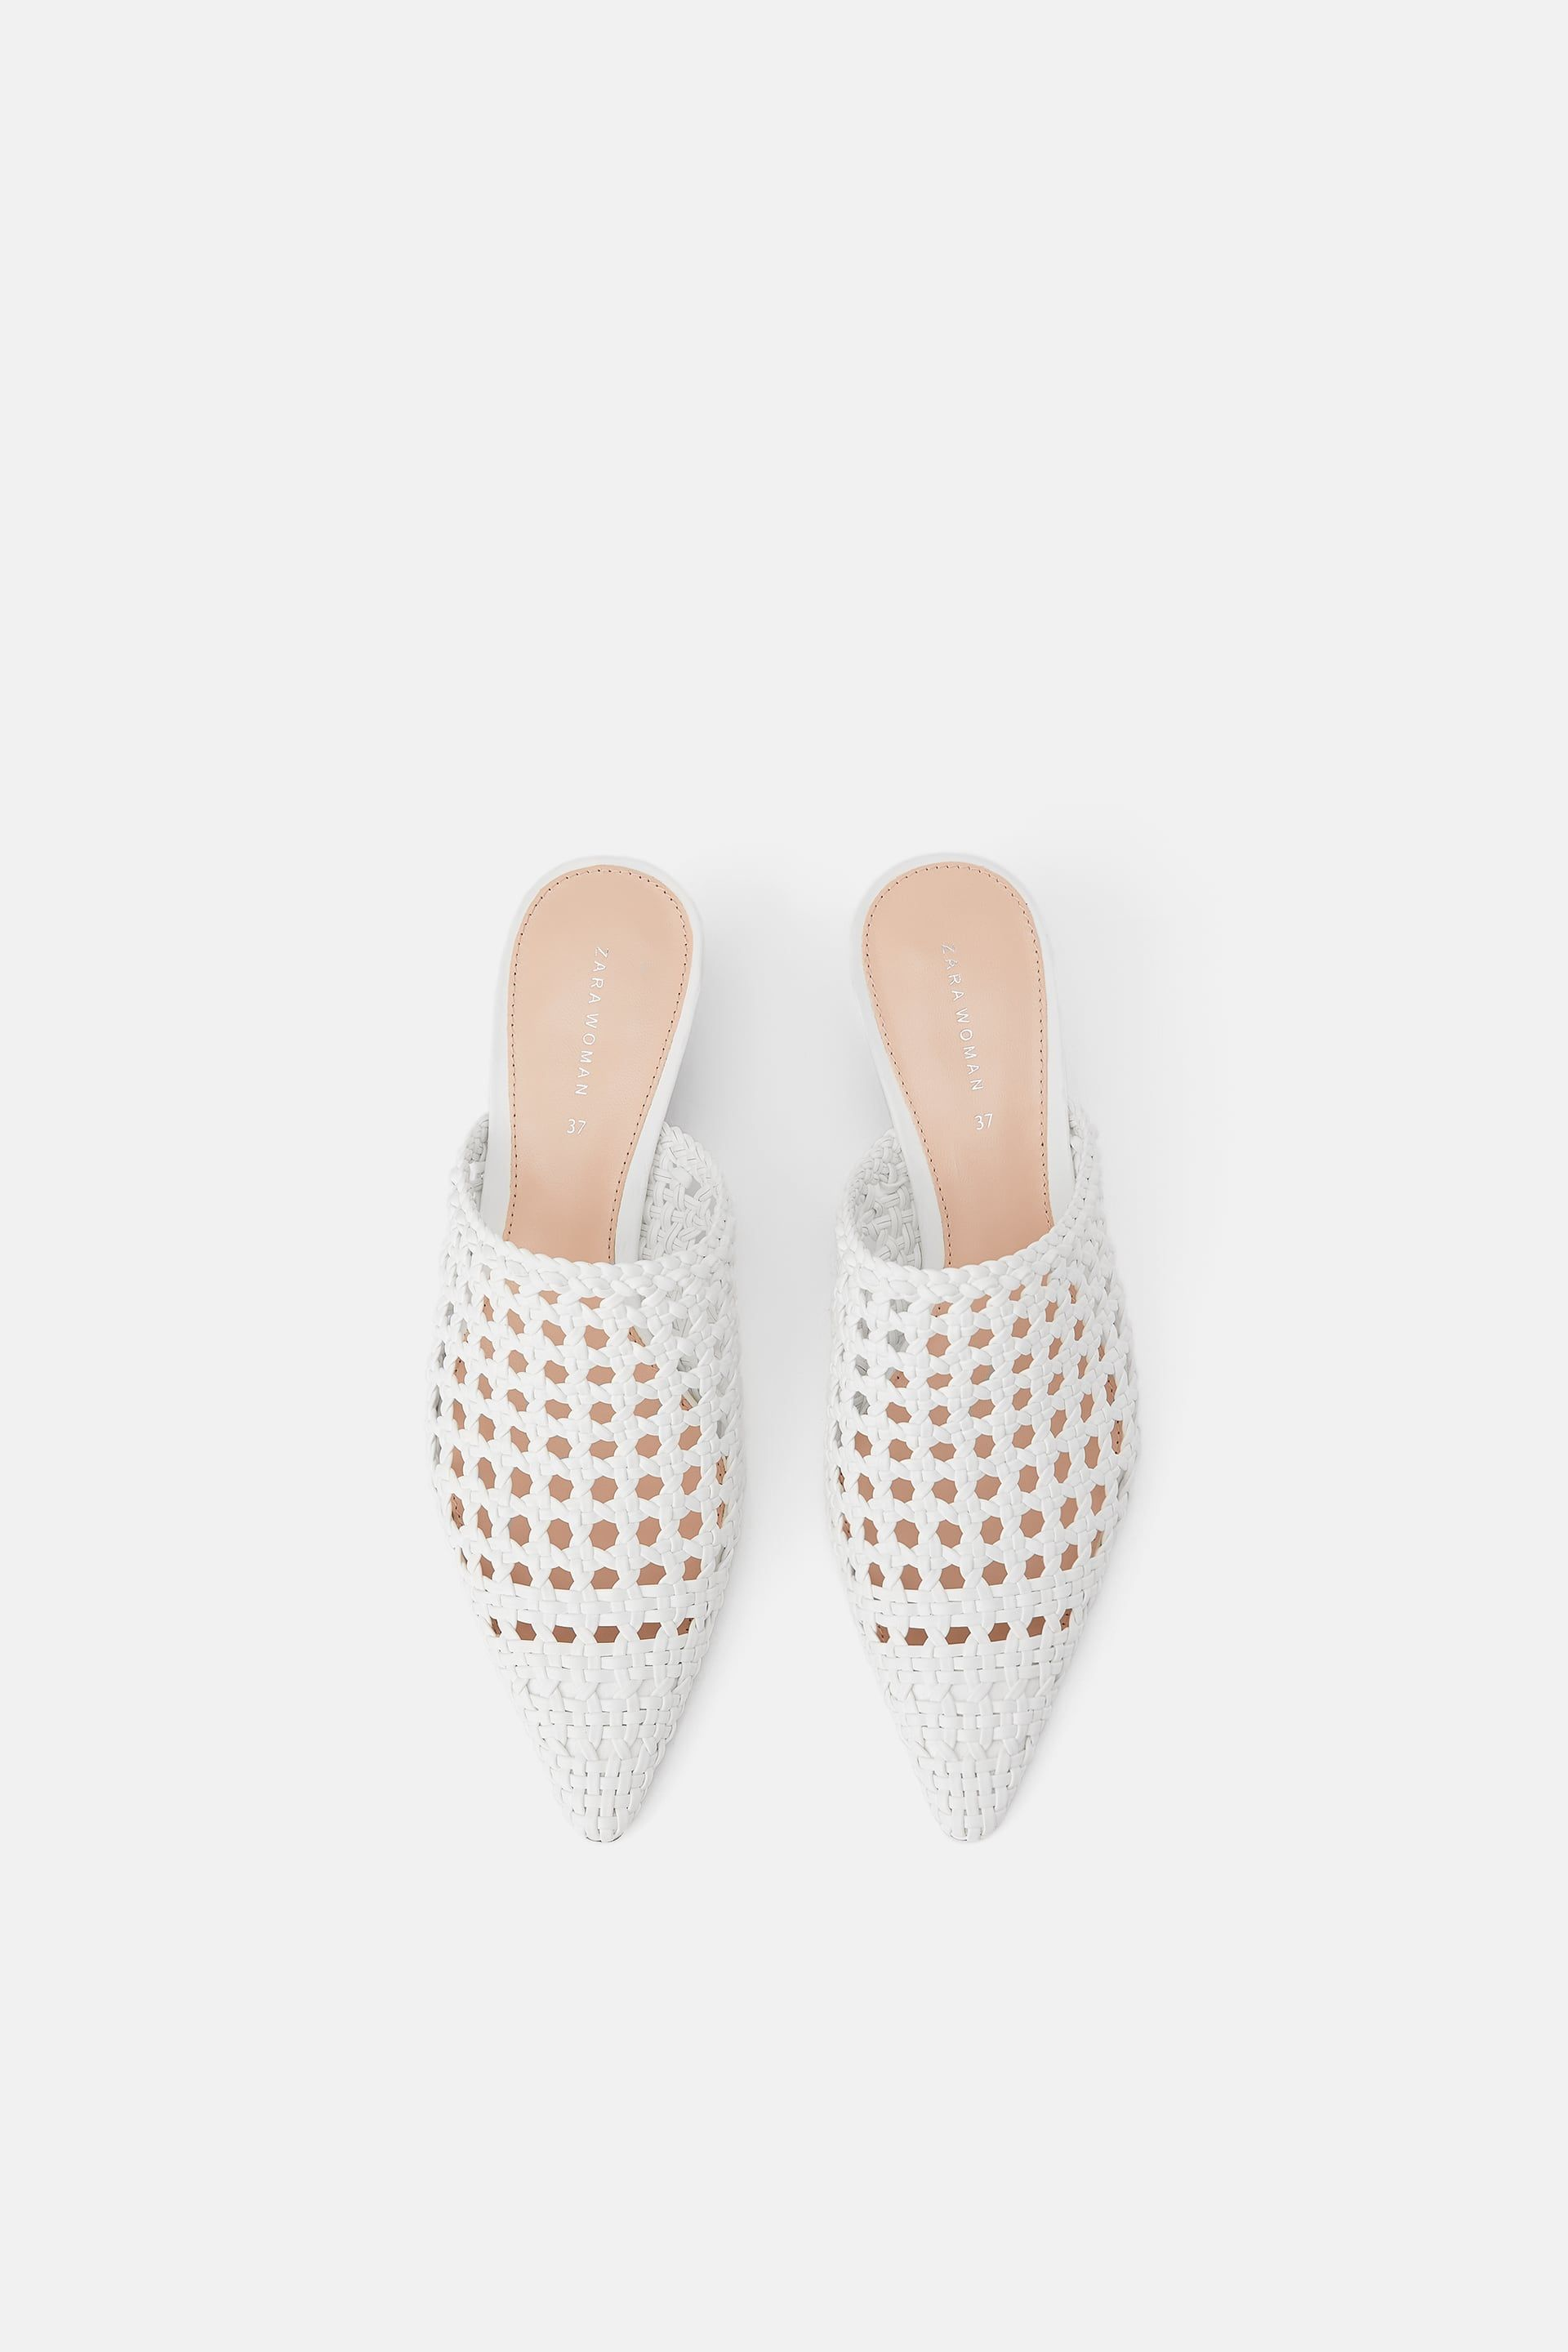 WOVEN COWBOY HEELED MULES - View all